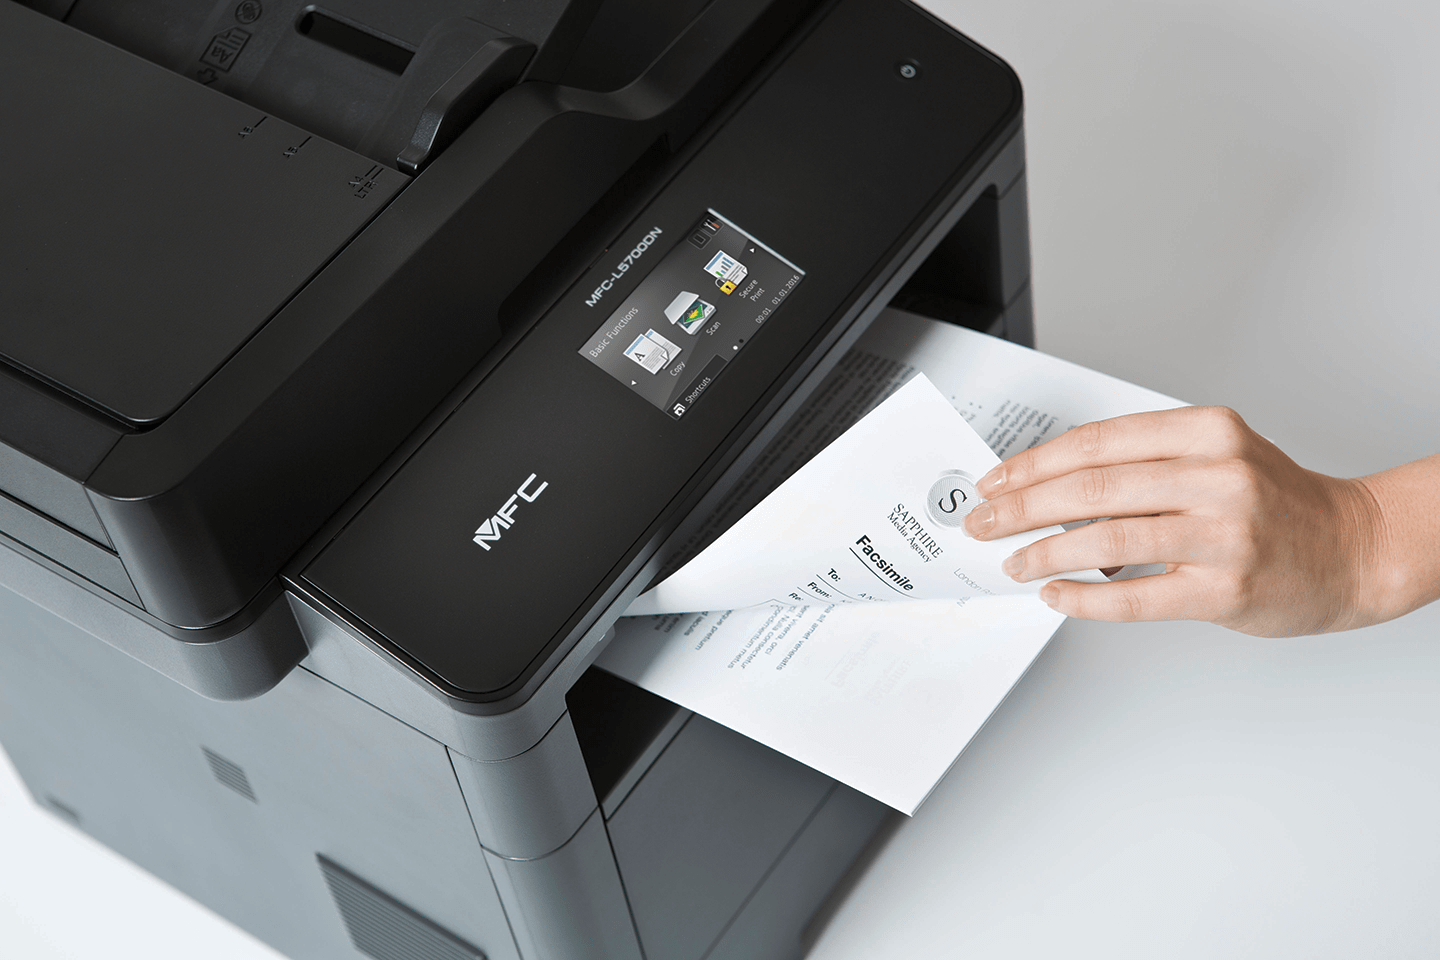 MFC-L5700DN business all-in-one mono laser printer 4